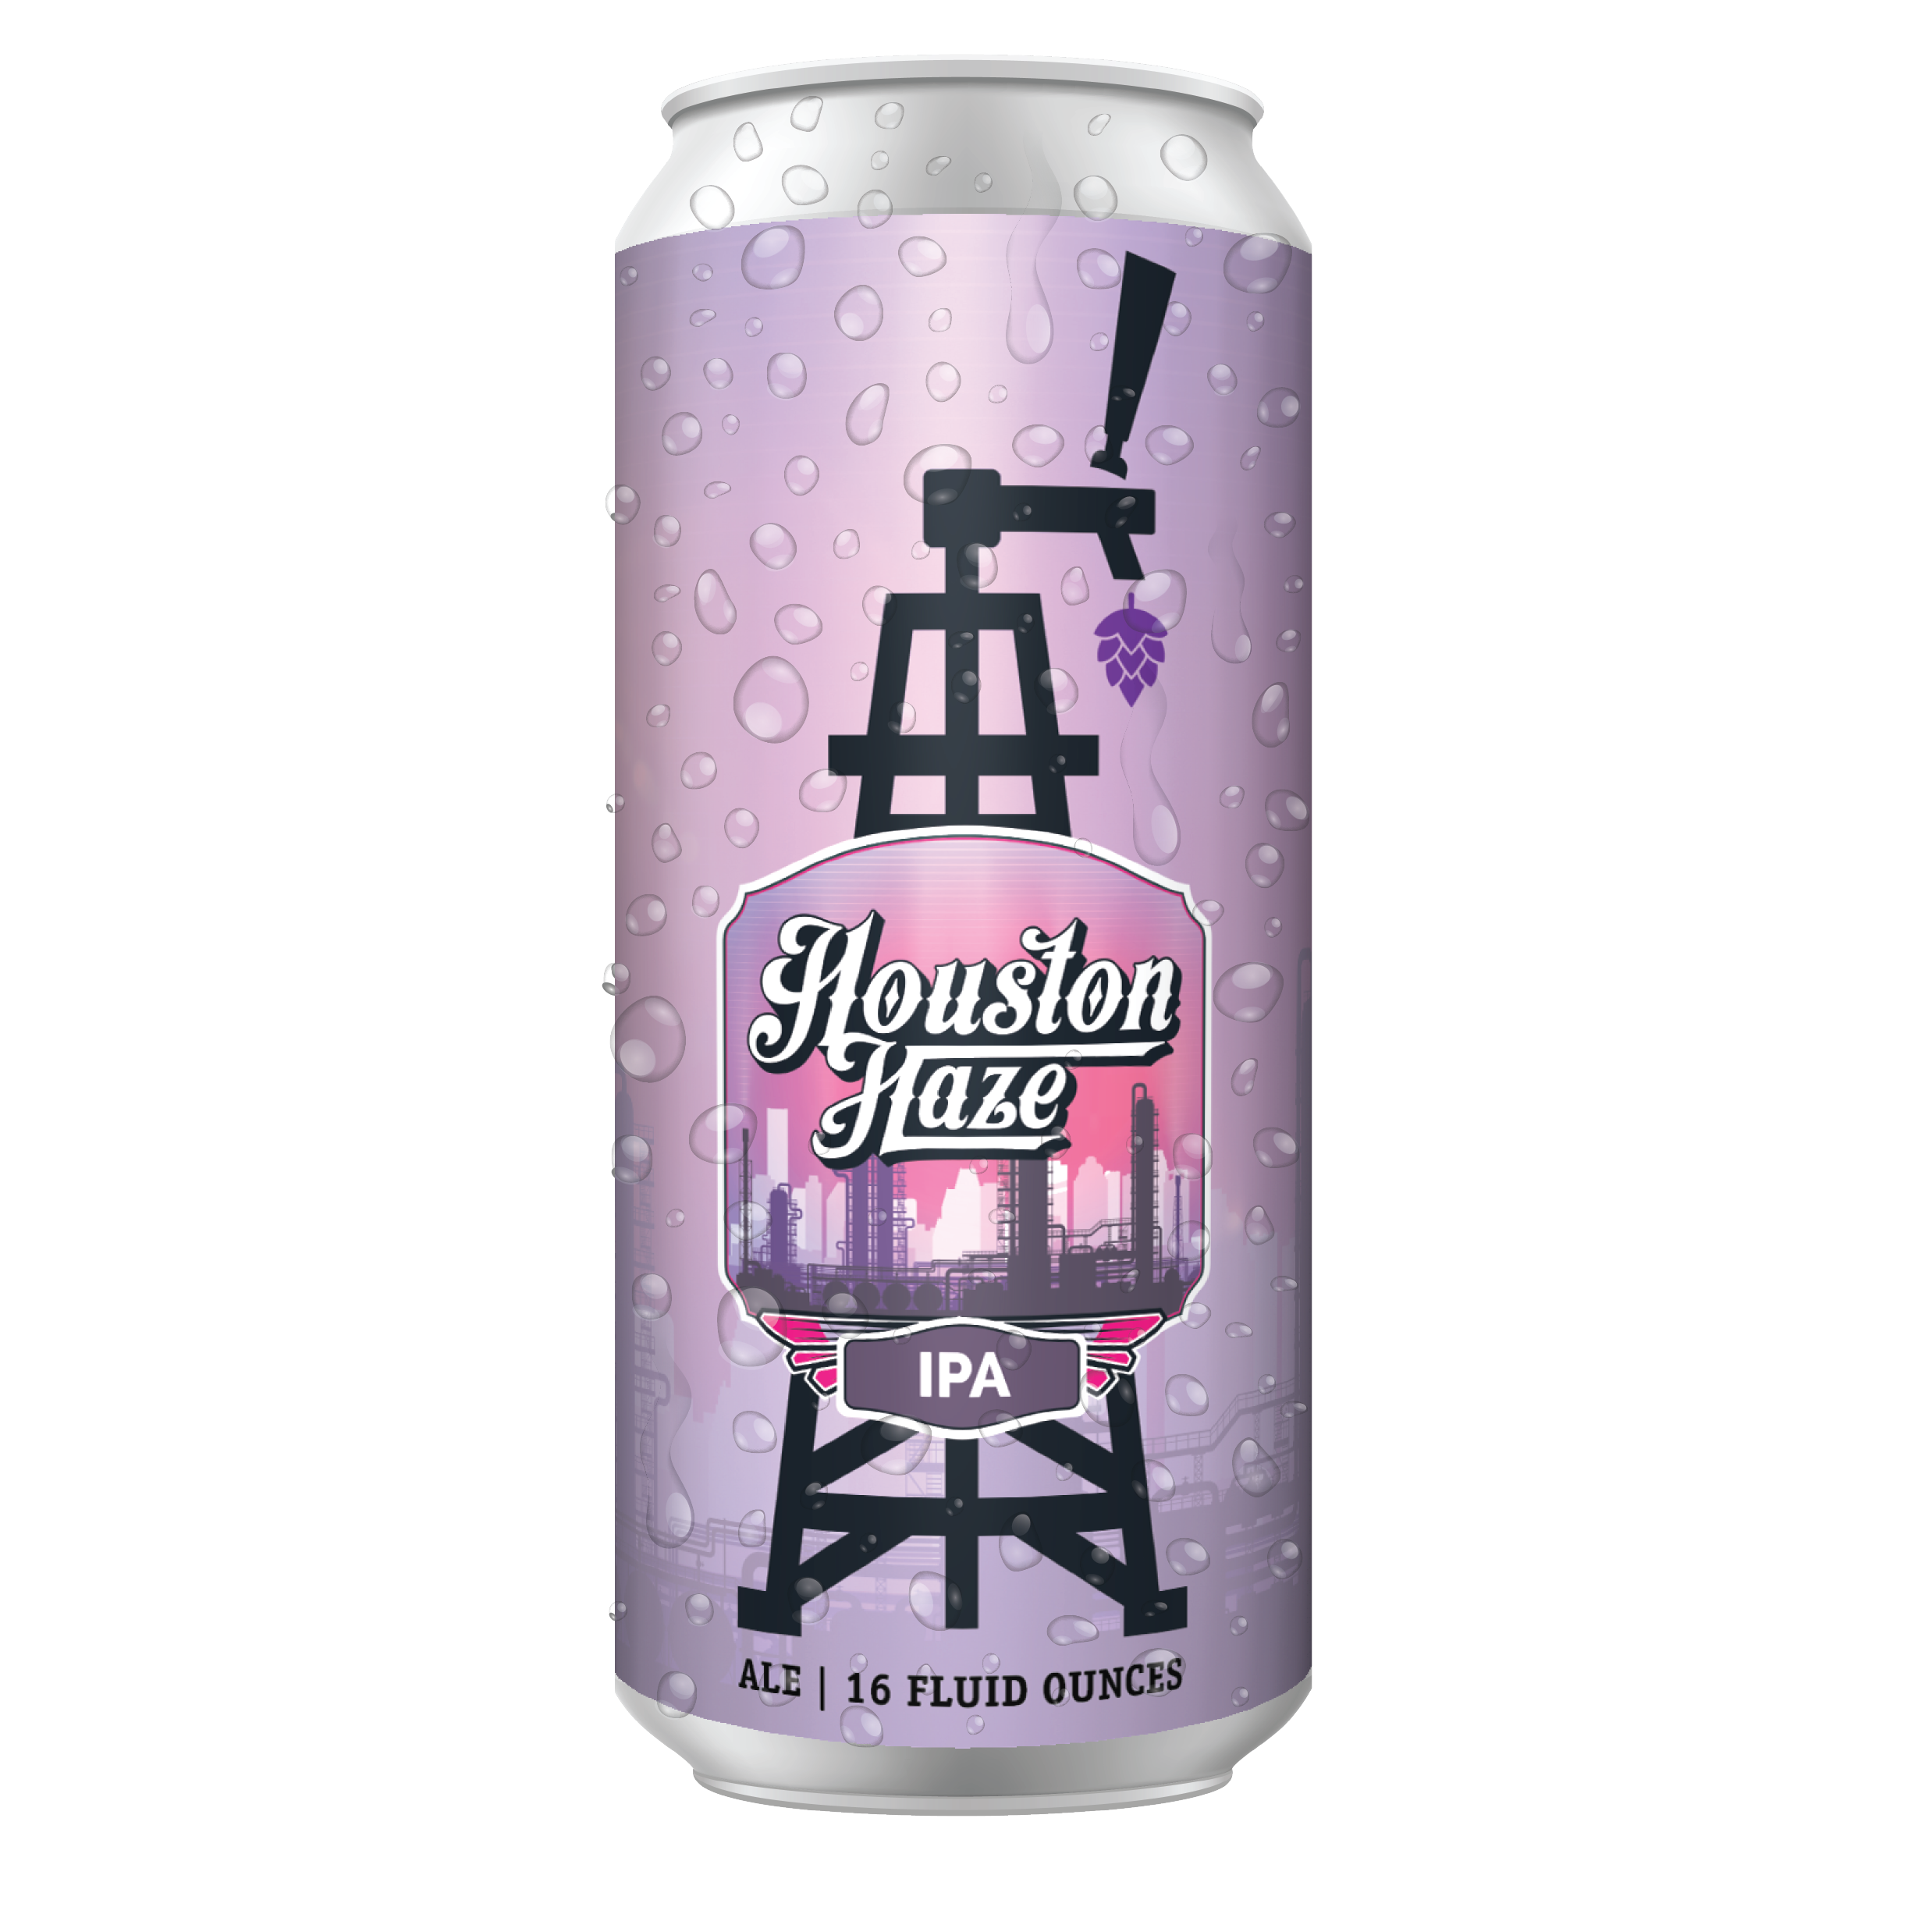 Houston Haze - IPA